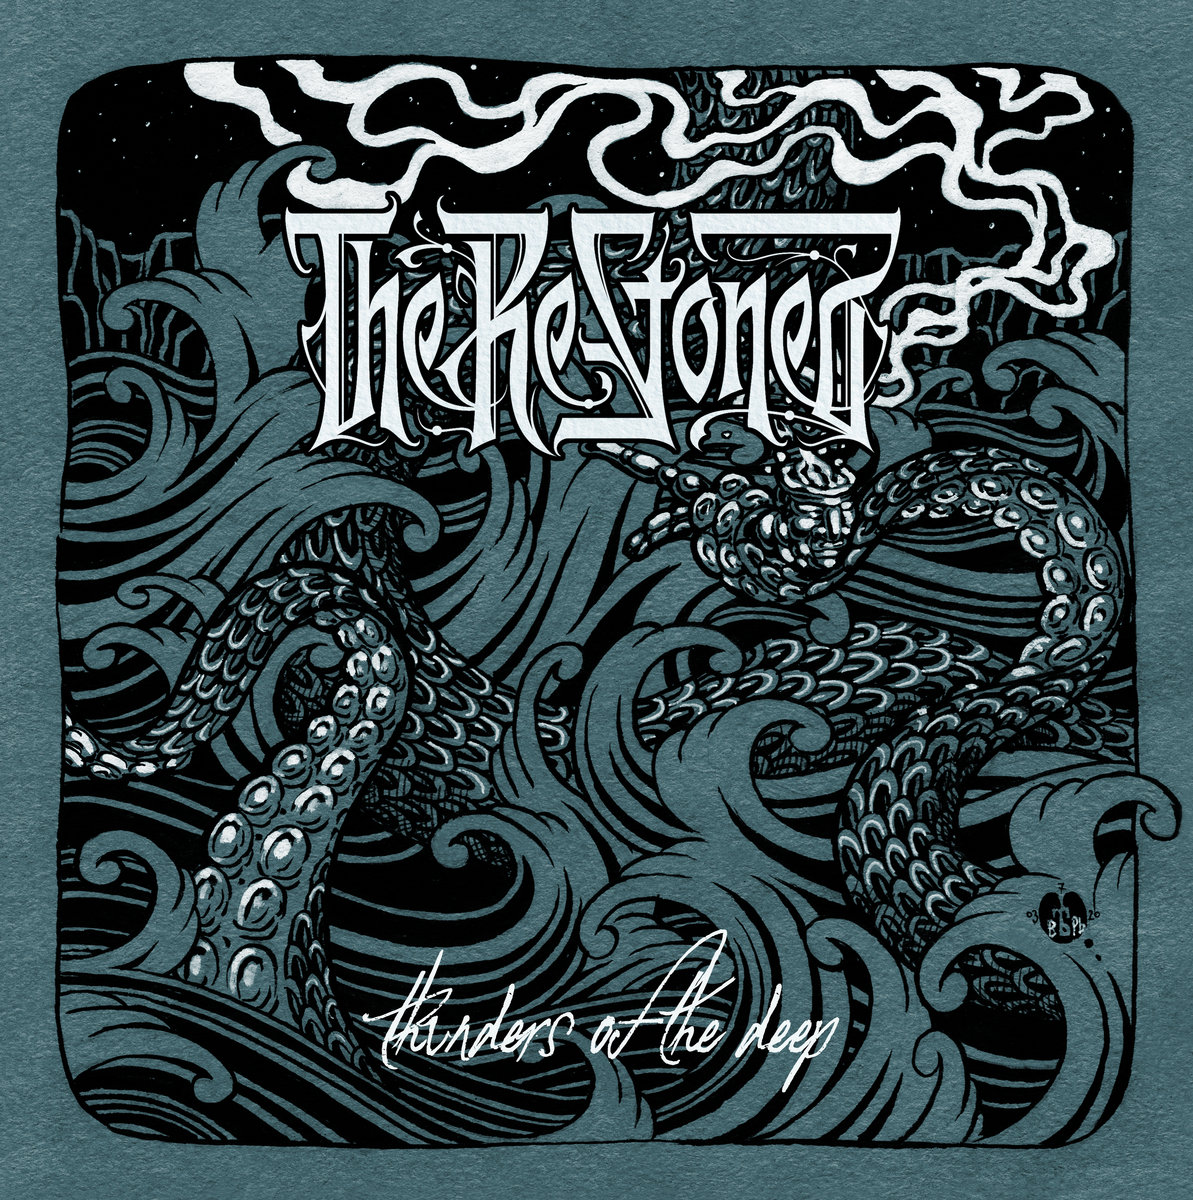 Reseña: THE RE-STONED.- 'Thunders of the deep'